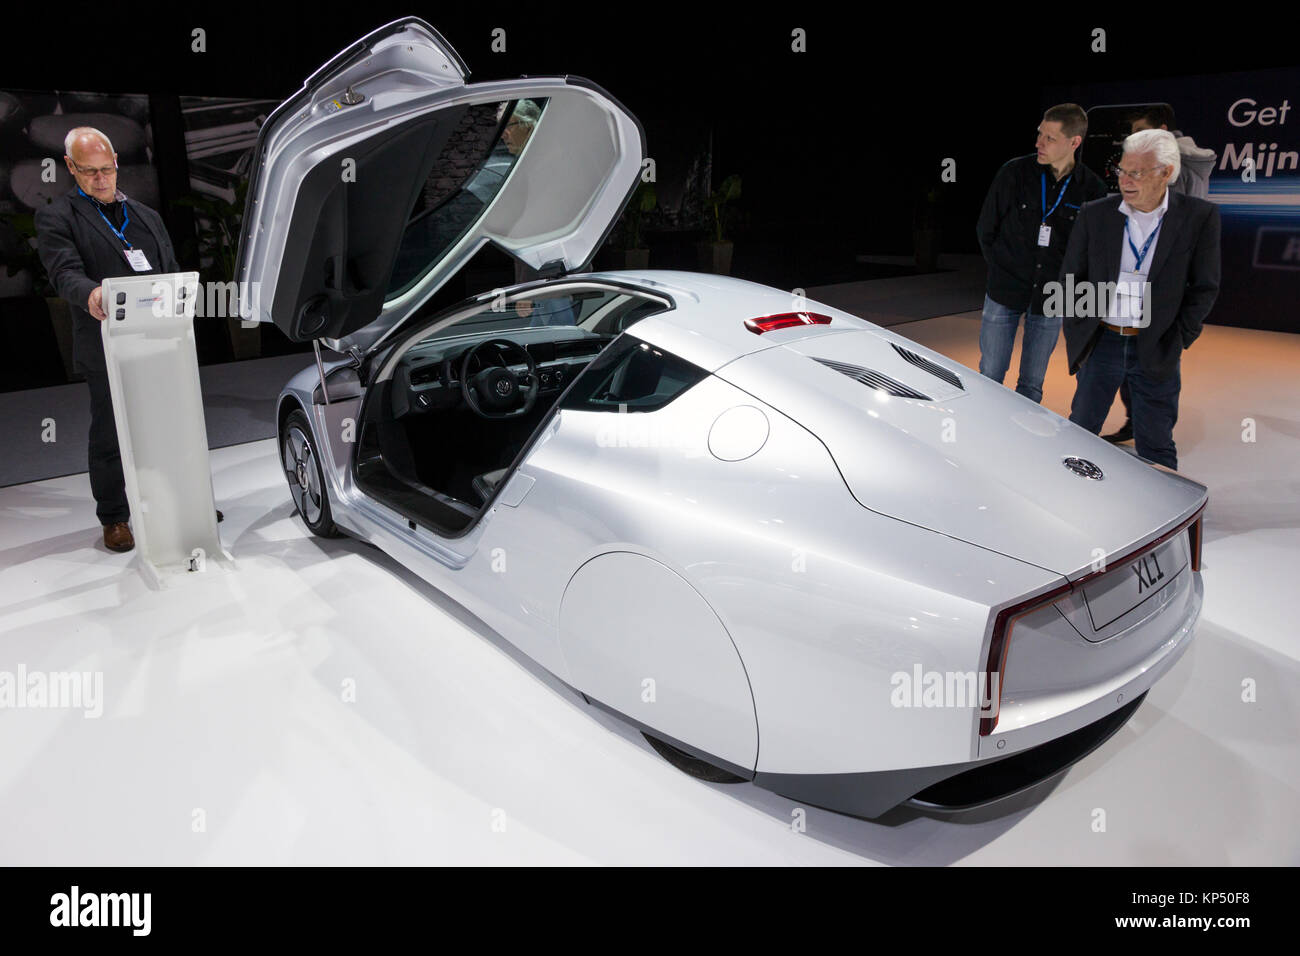 AMSTERDAM - APR 16, 2015: Volkswagen XL1 two-person limited production diesel-powered plug-in hybrid car at the - Stock Image